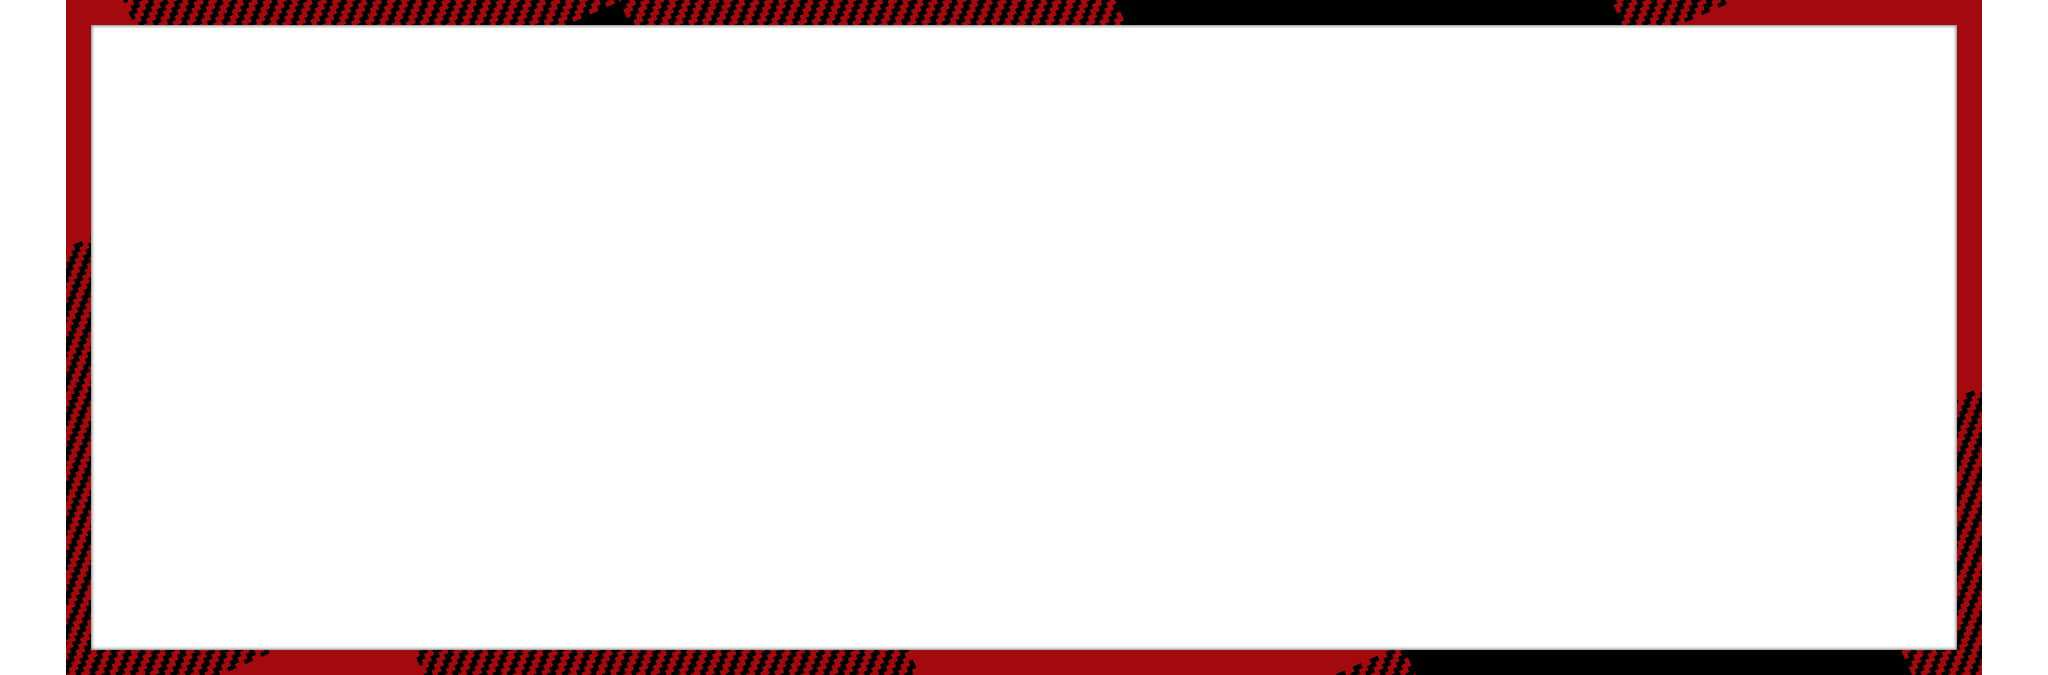 white with red border